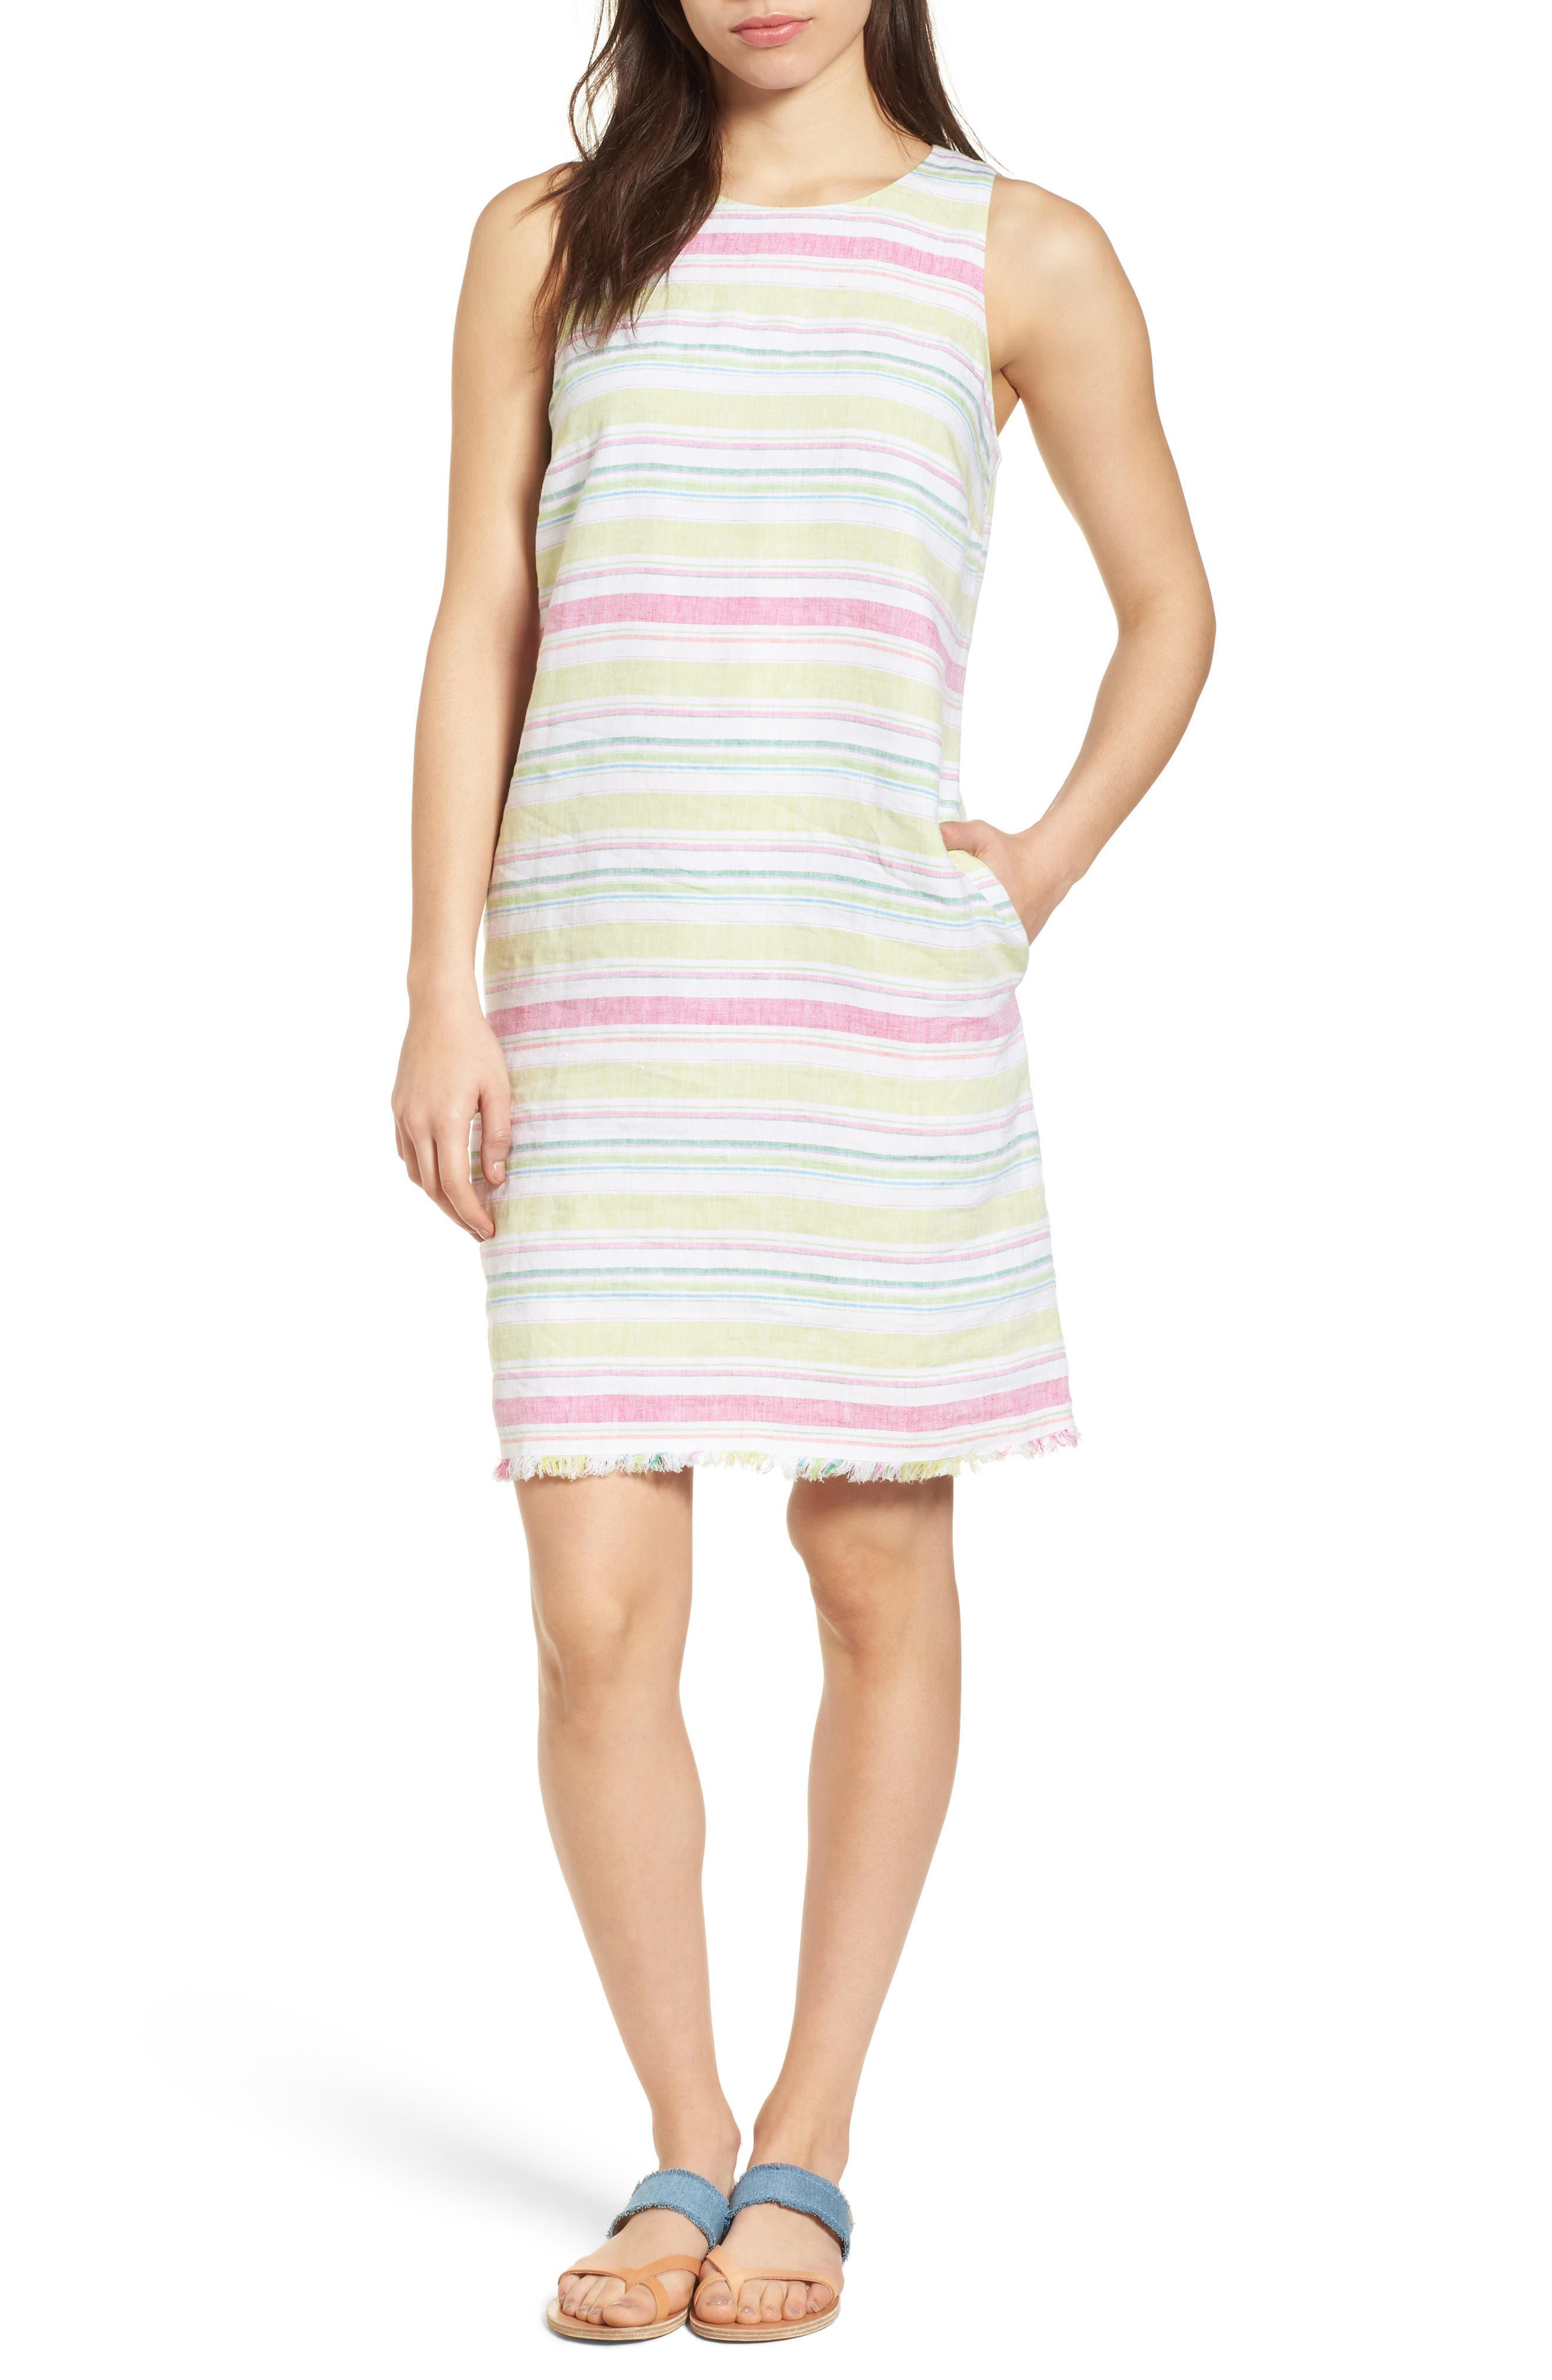 Tulum Stripe Shift Dress,                         Main,                         color, Energy Yellow